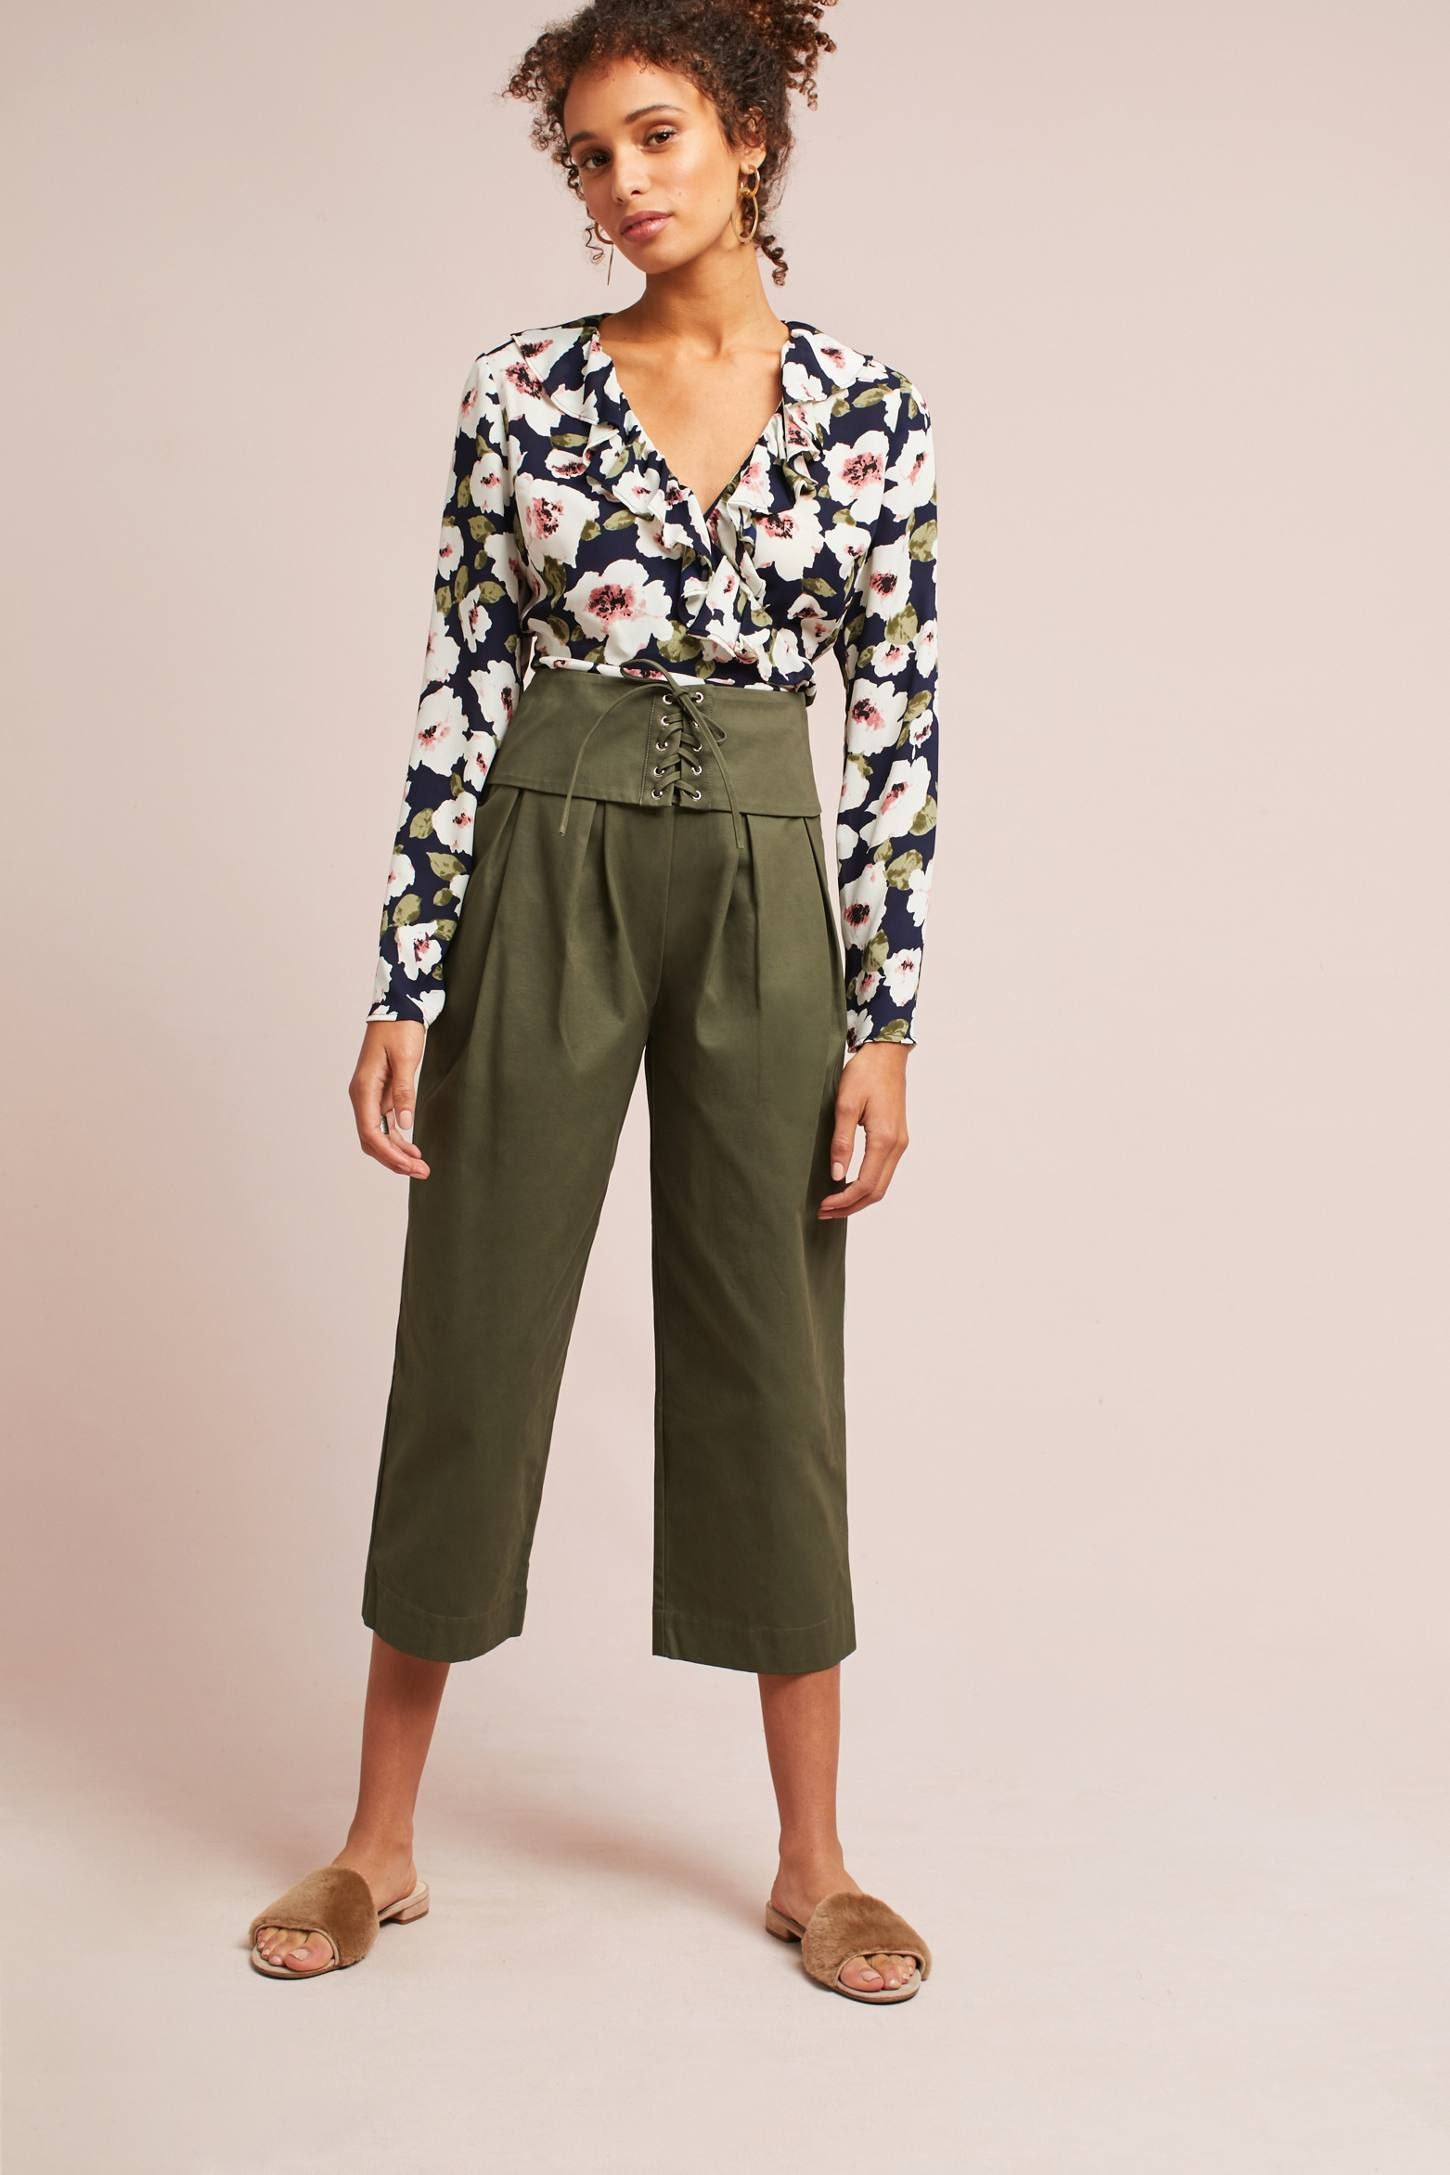 Shop the Corseted Wide-Leg Pants and more Anthropologie at Anthropologie today. Read customer reviews, discover product details and more.